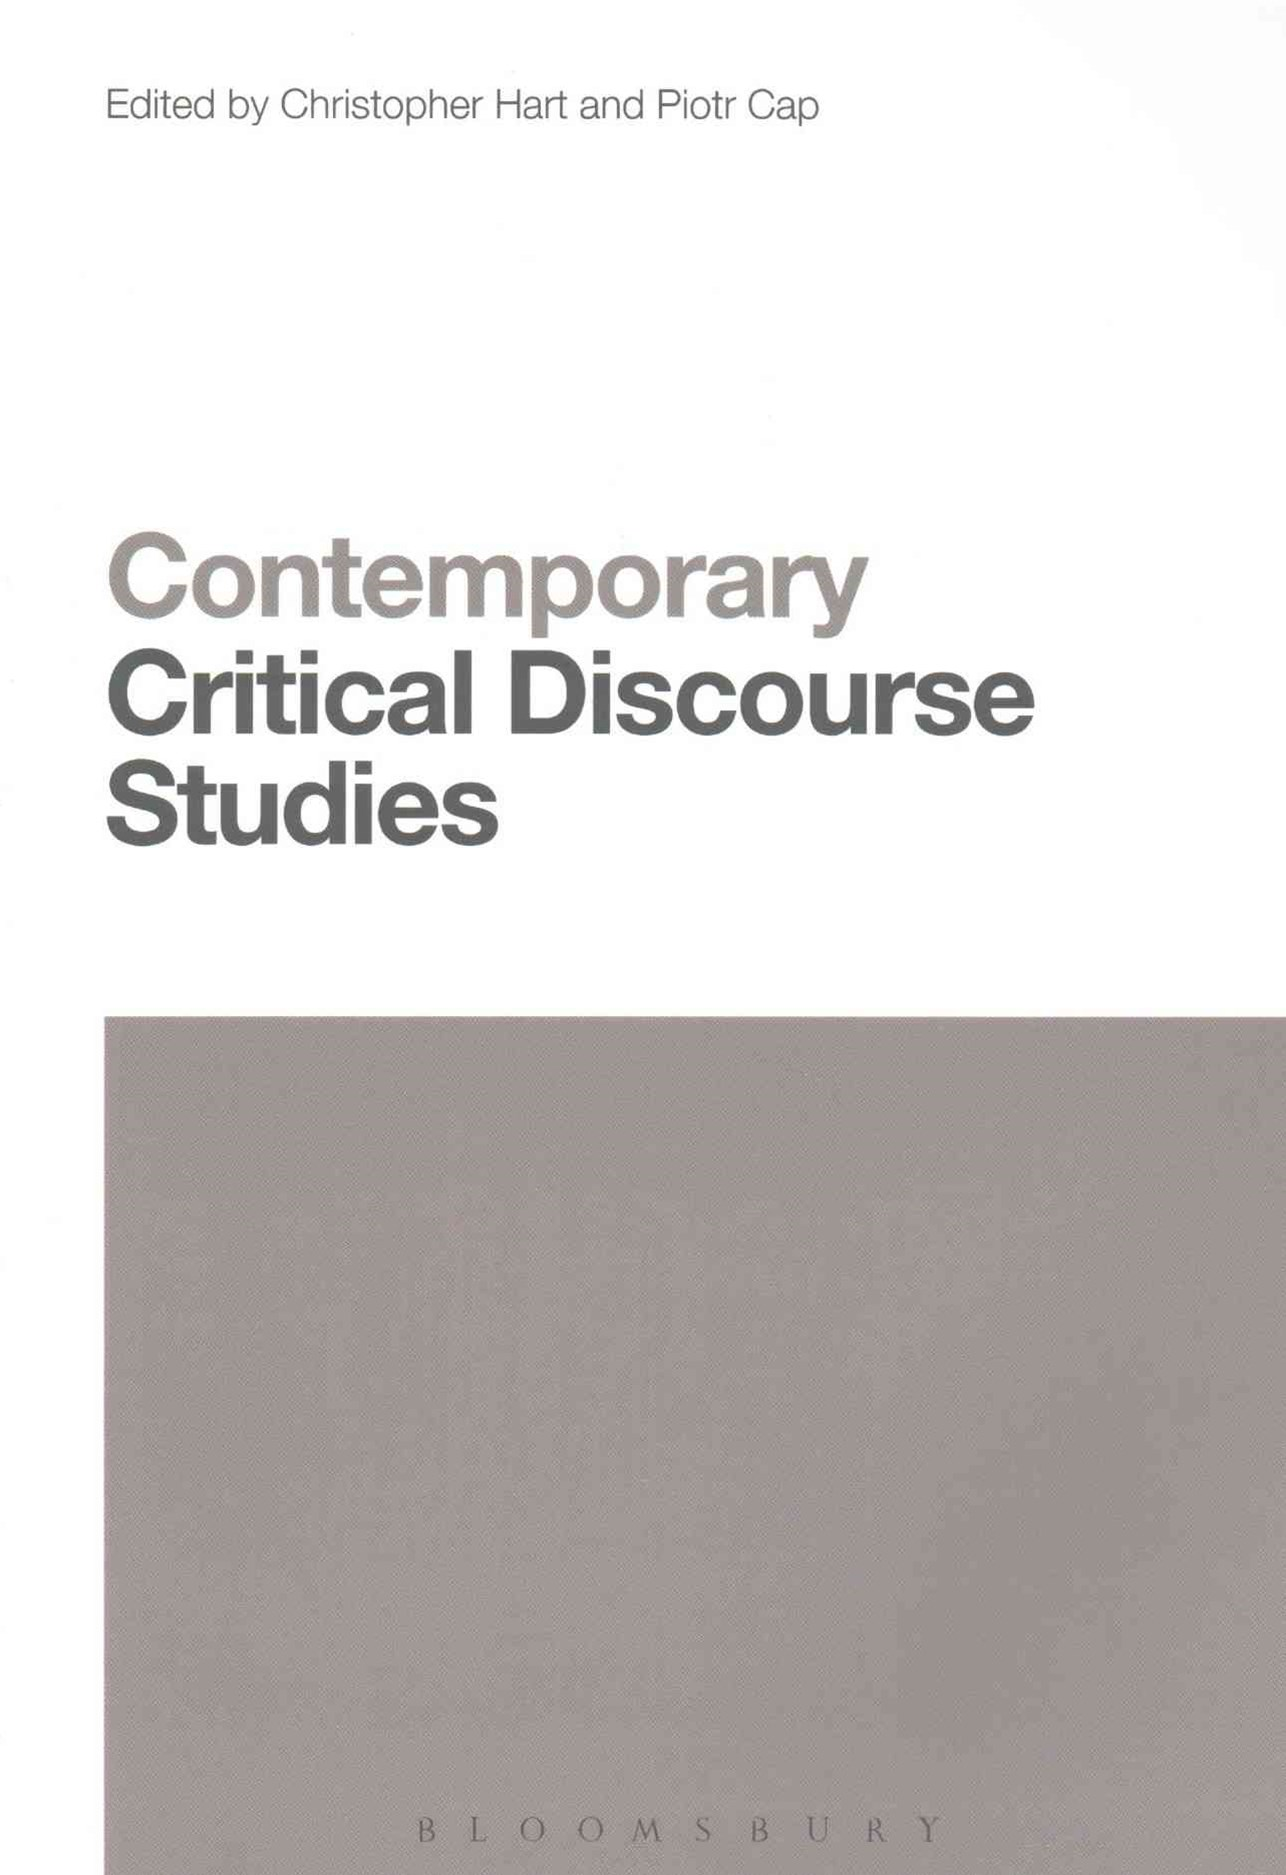 Contemporary Critical Discourse Studies